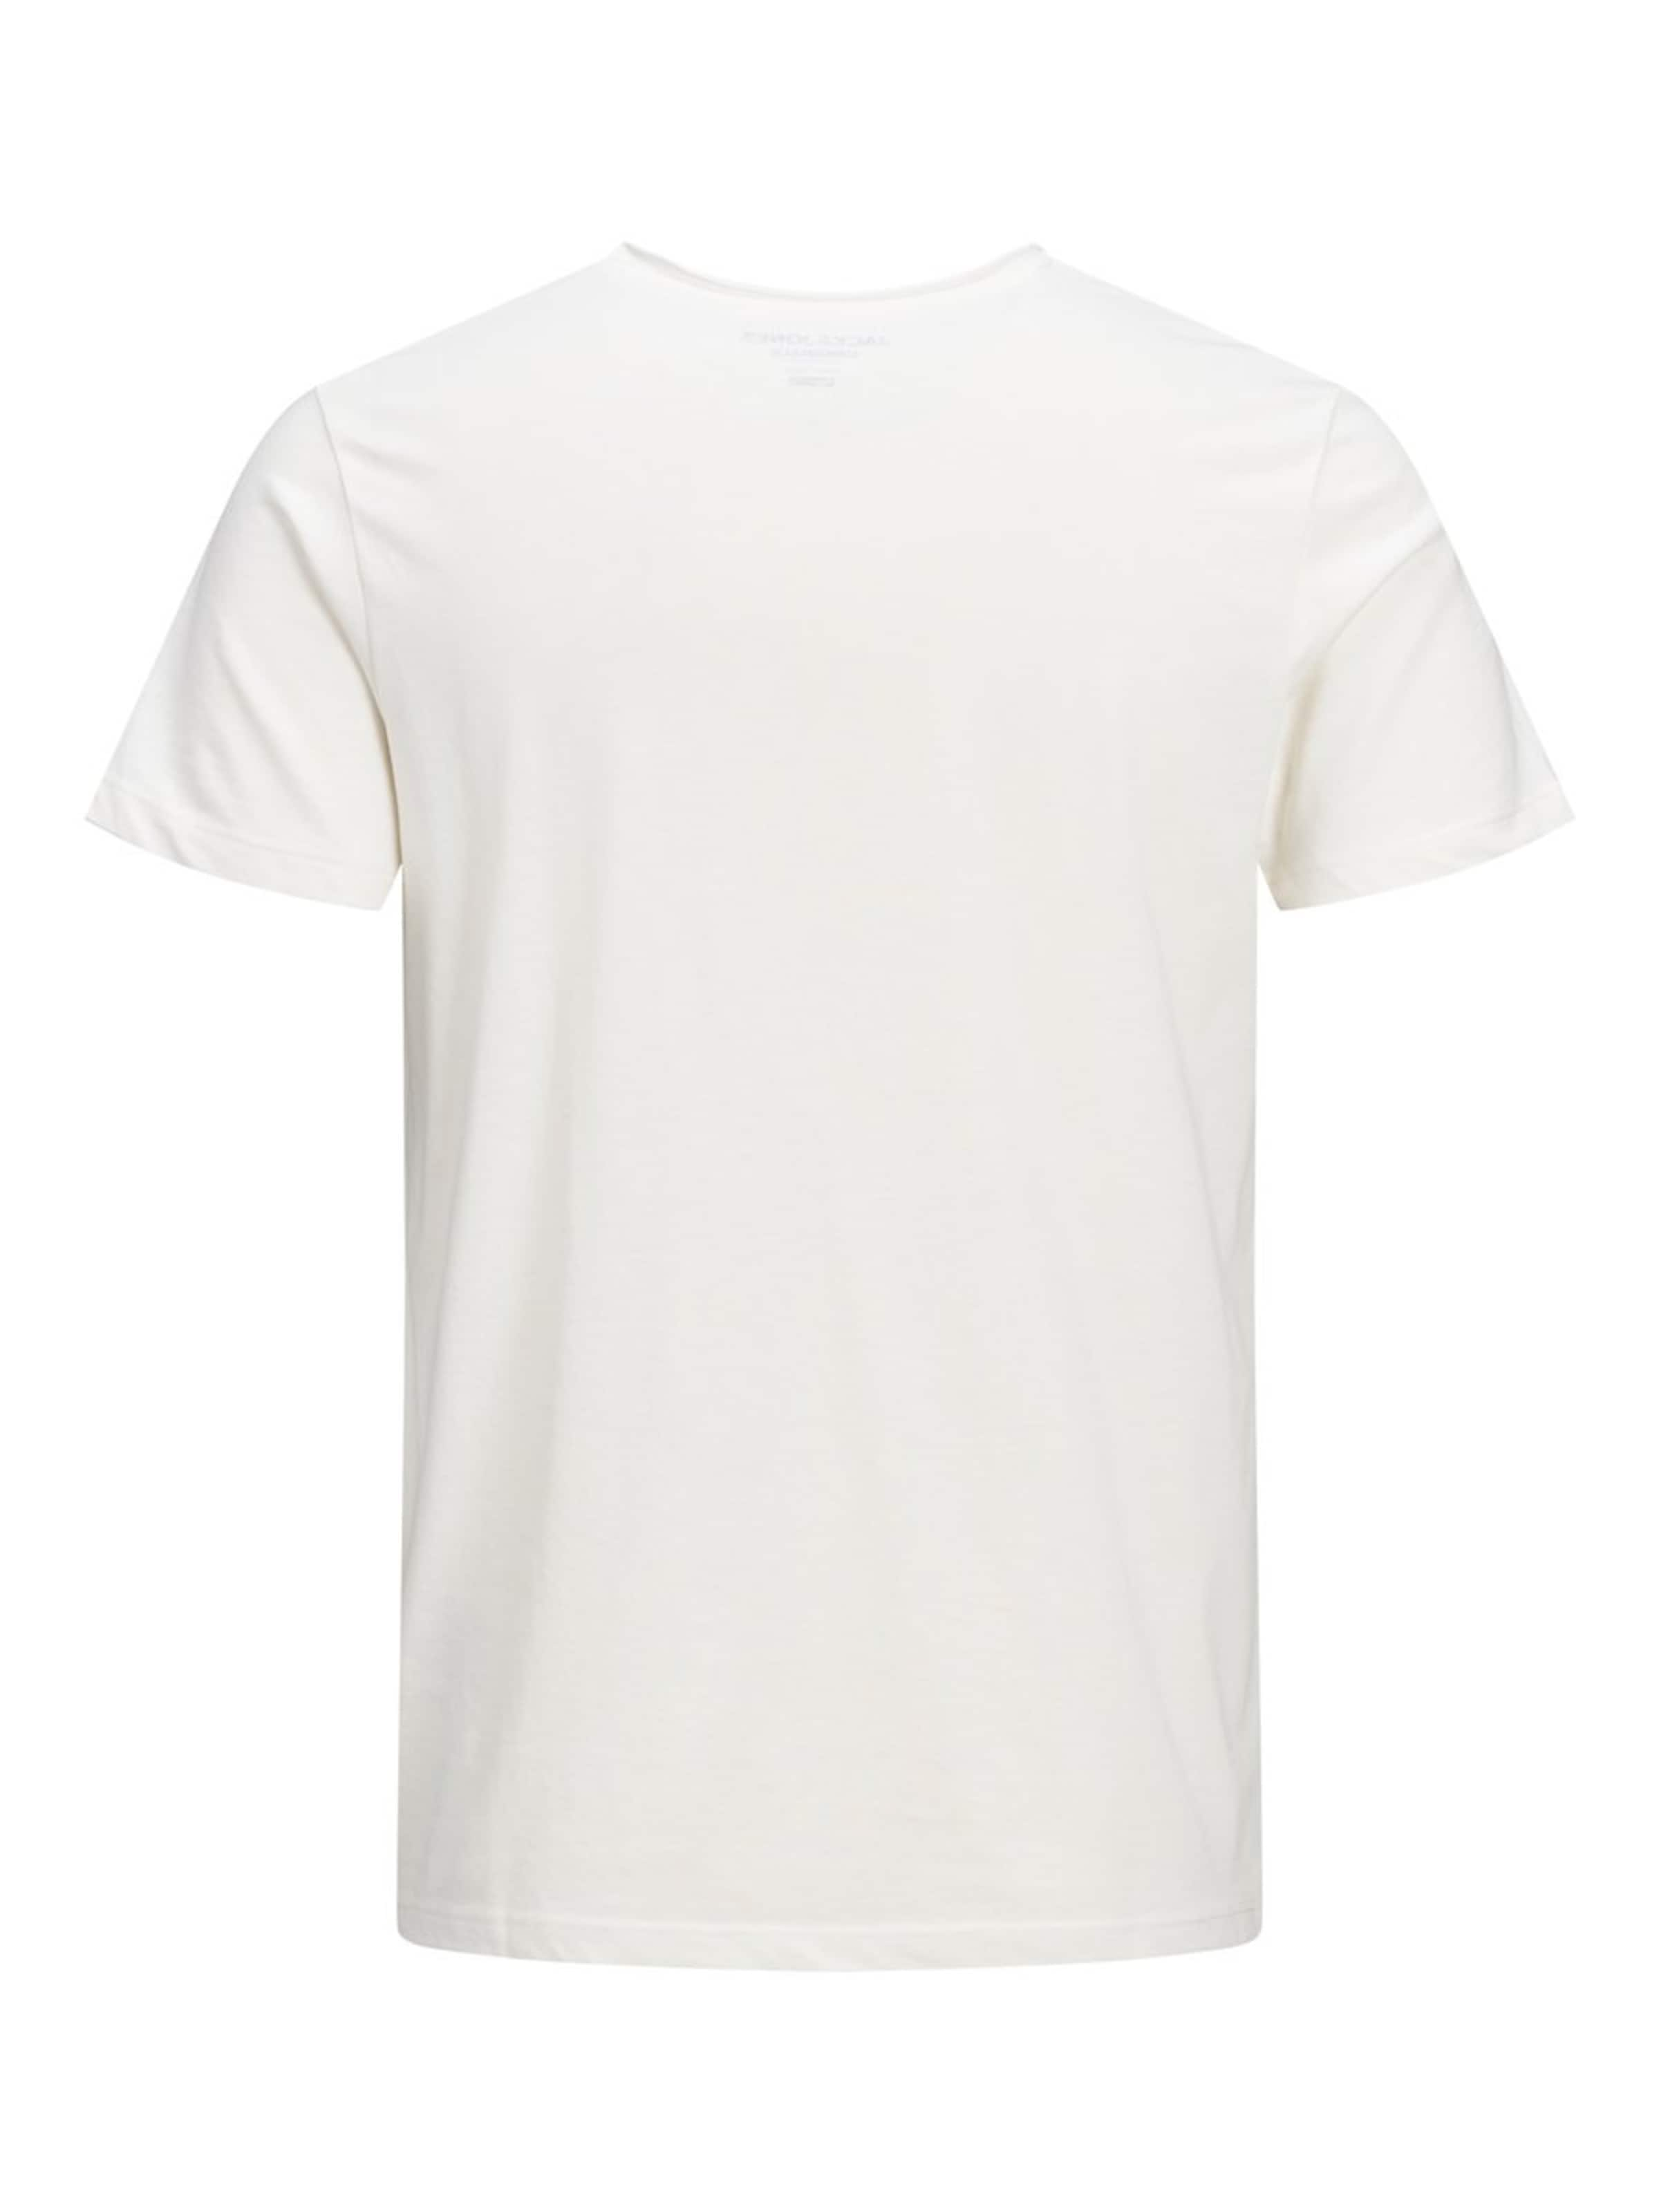 Jackamp; shirt En Jones T Blanc 8vnwym0ON